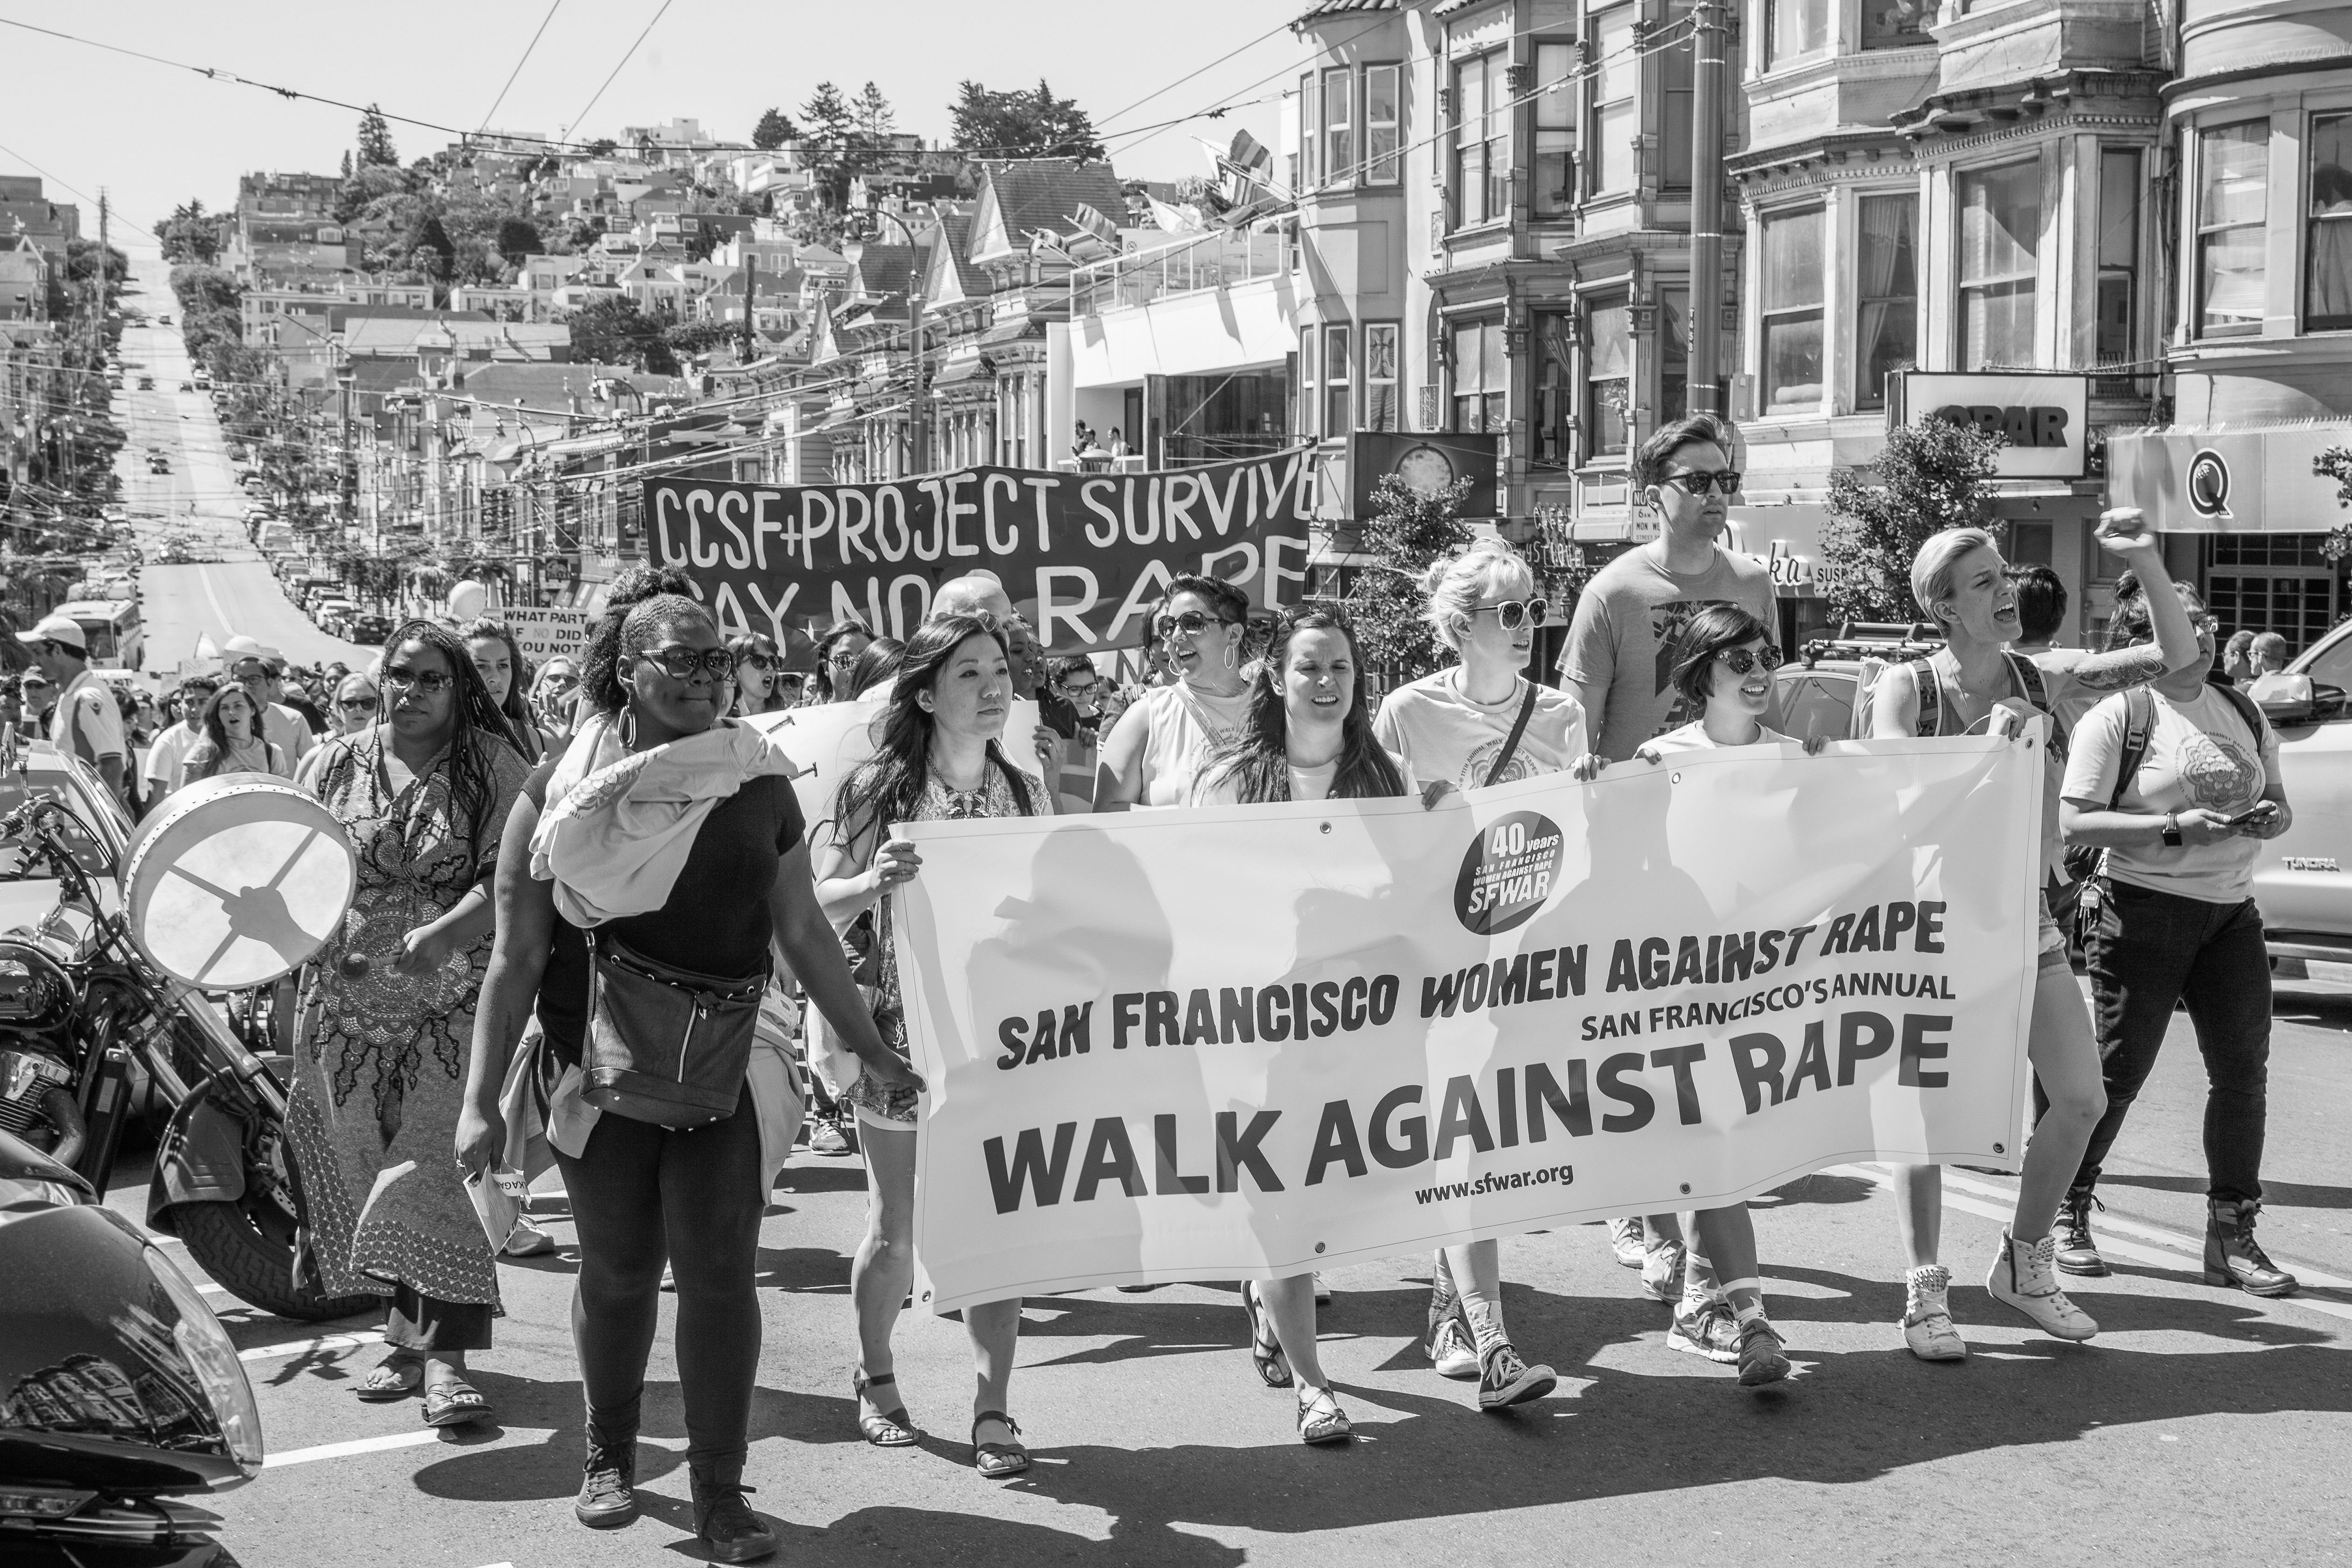 Protesters march to support the Walk Against Rape in The Mission District and Castro. Approximately 500 women and men participated in the demonstration on April 16th, 2016. (Agustina Perretta/Special to The Guardsman